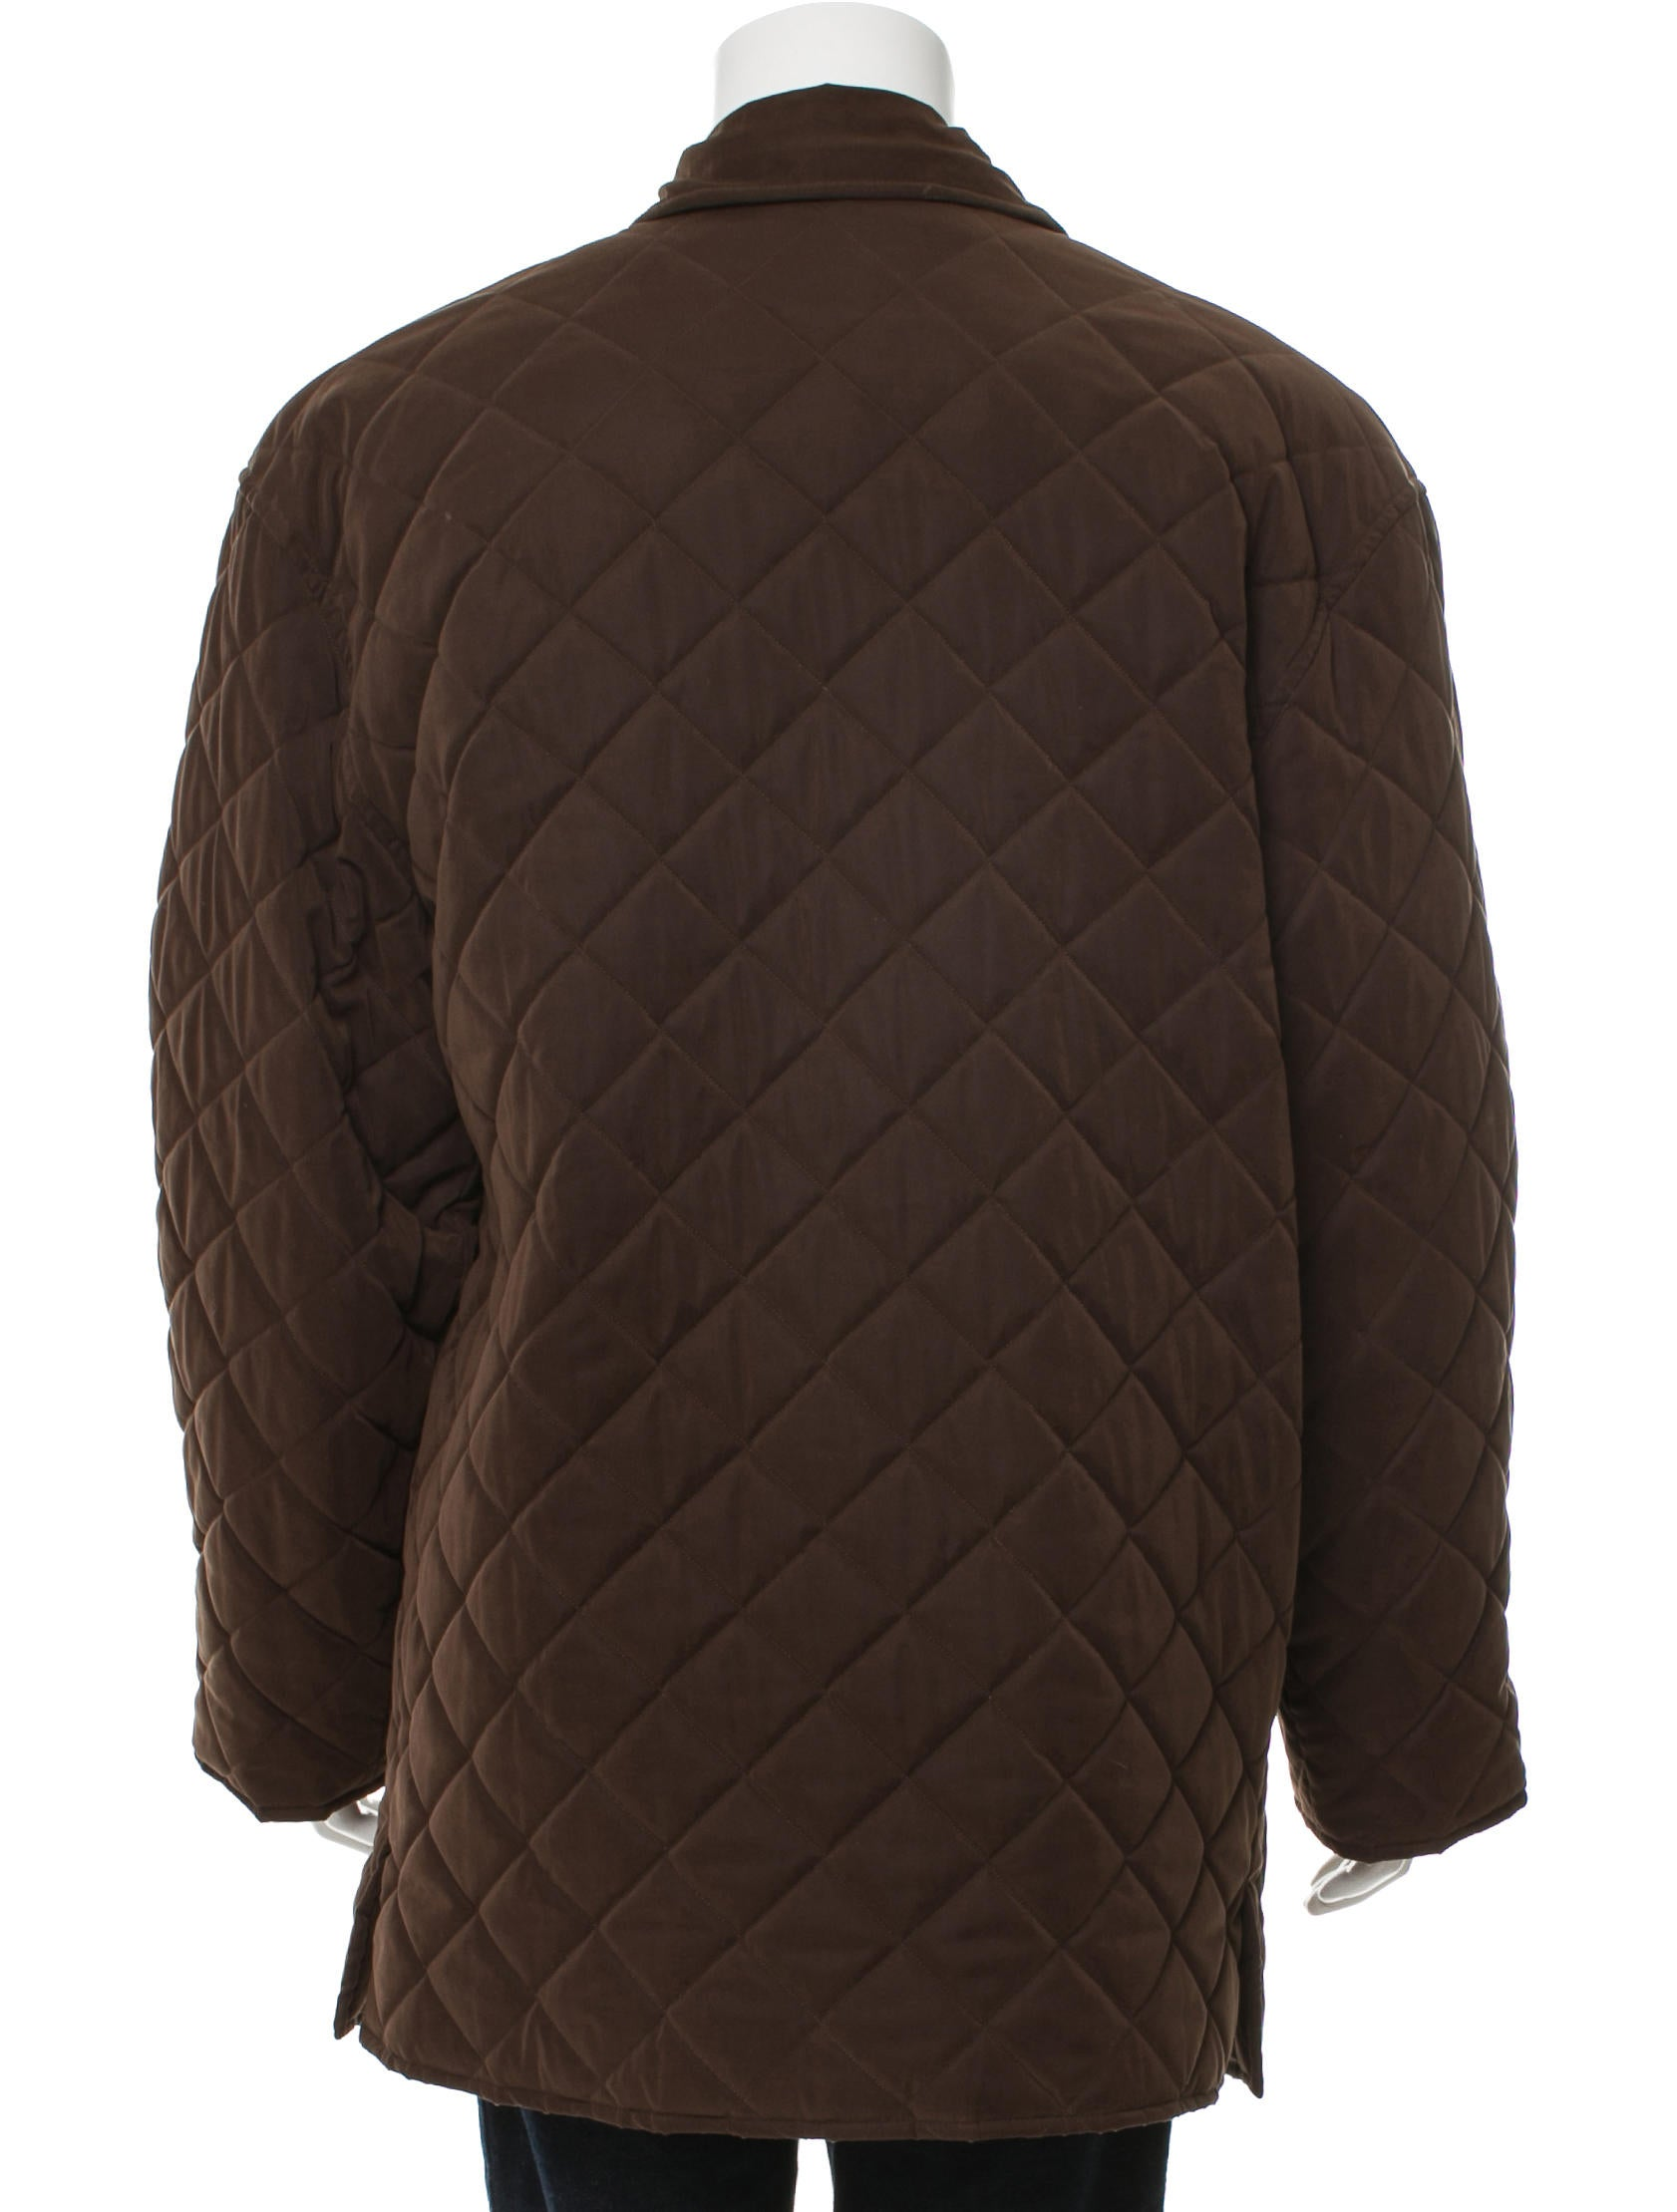 Herm S Quilted Wool Coat Clothing Her112036 The Realreal